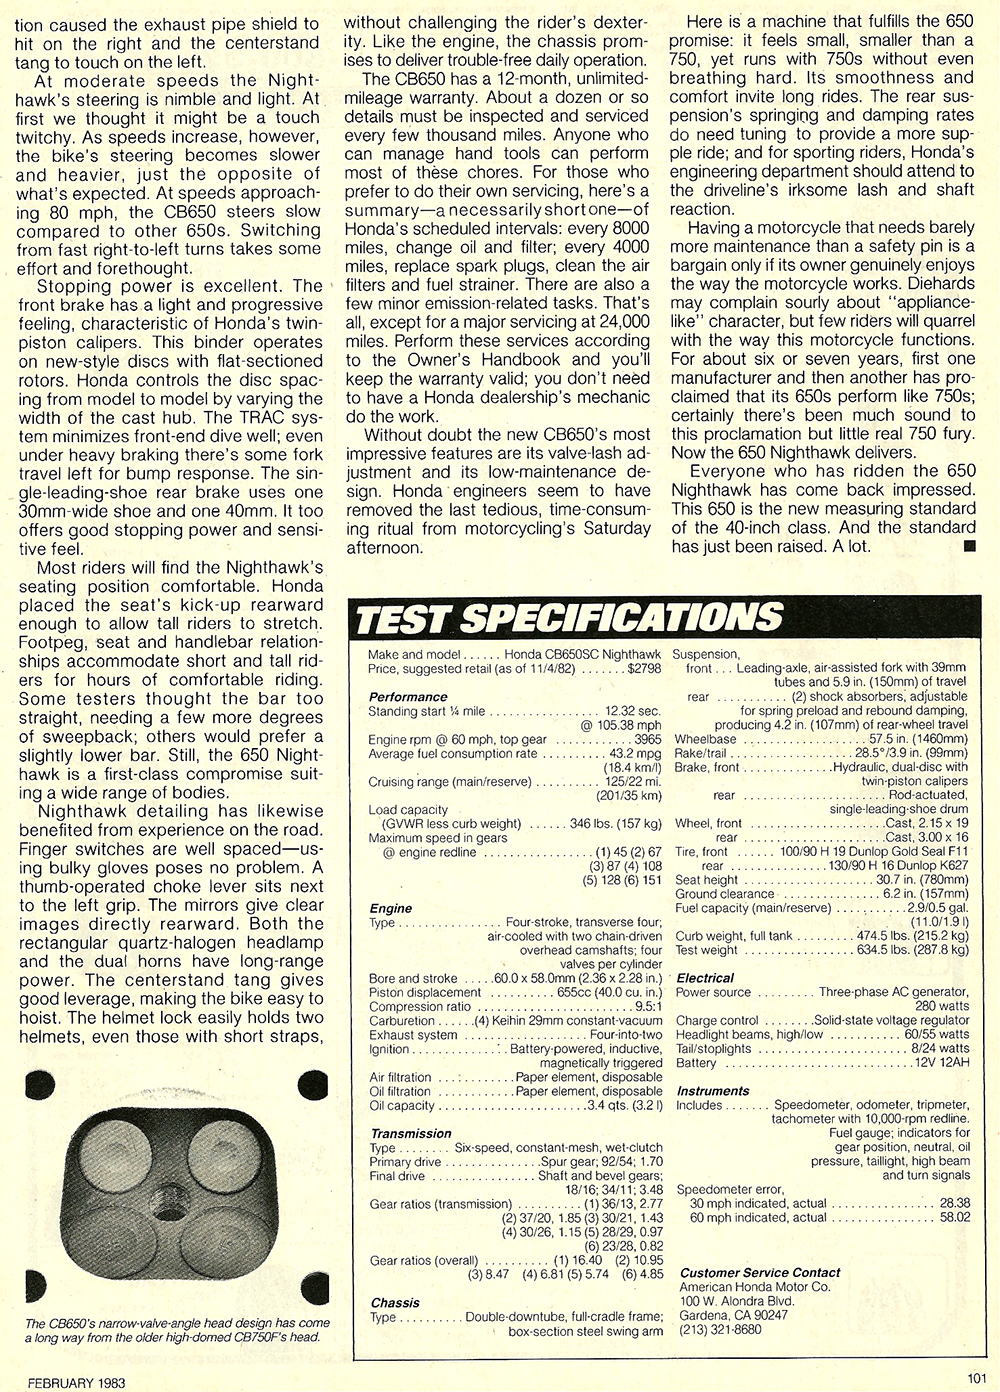 1983 Honda CB650SC Nighthawk road test 8.jpg